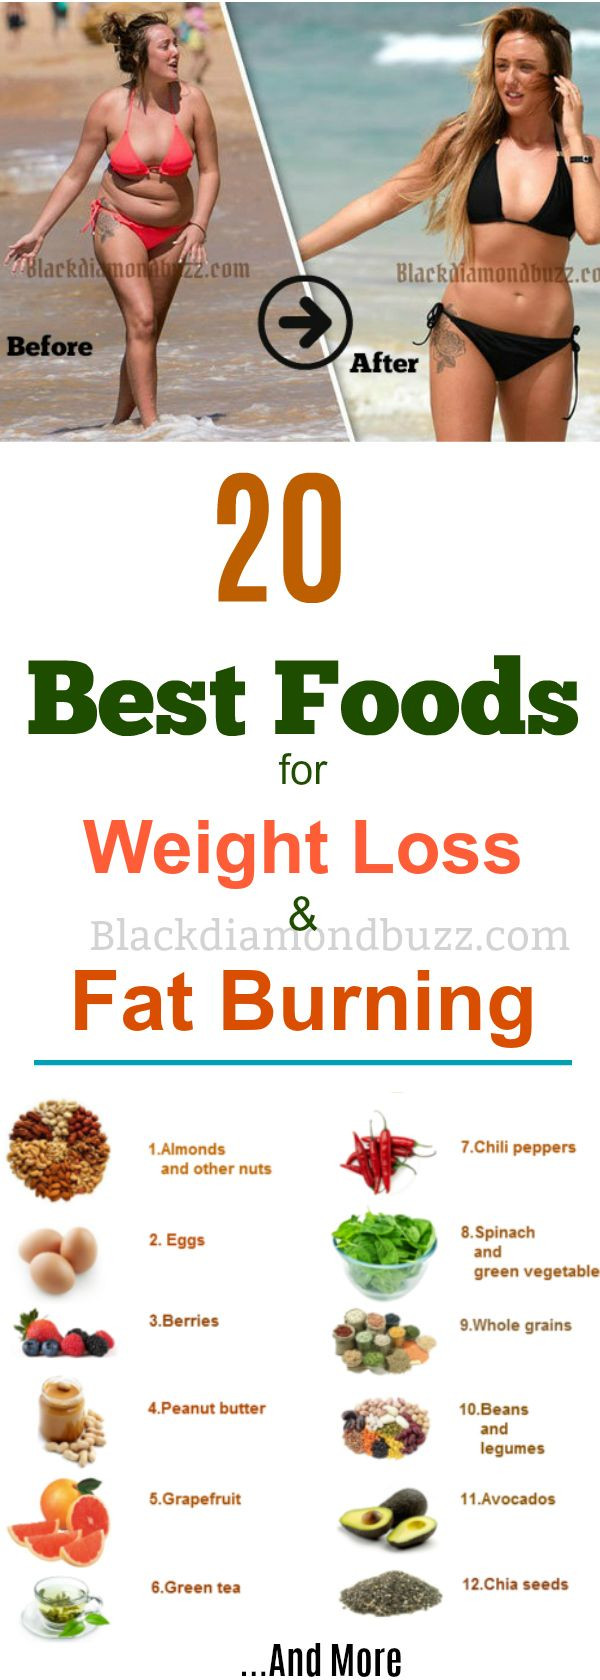 Fat Burning Foods Losing Weight Metabolism  20 Best Foods for Weight Loss Fat Burning and Metabolism